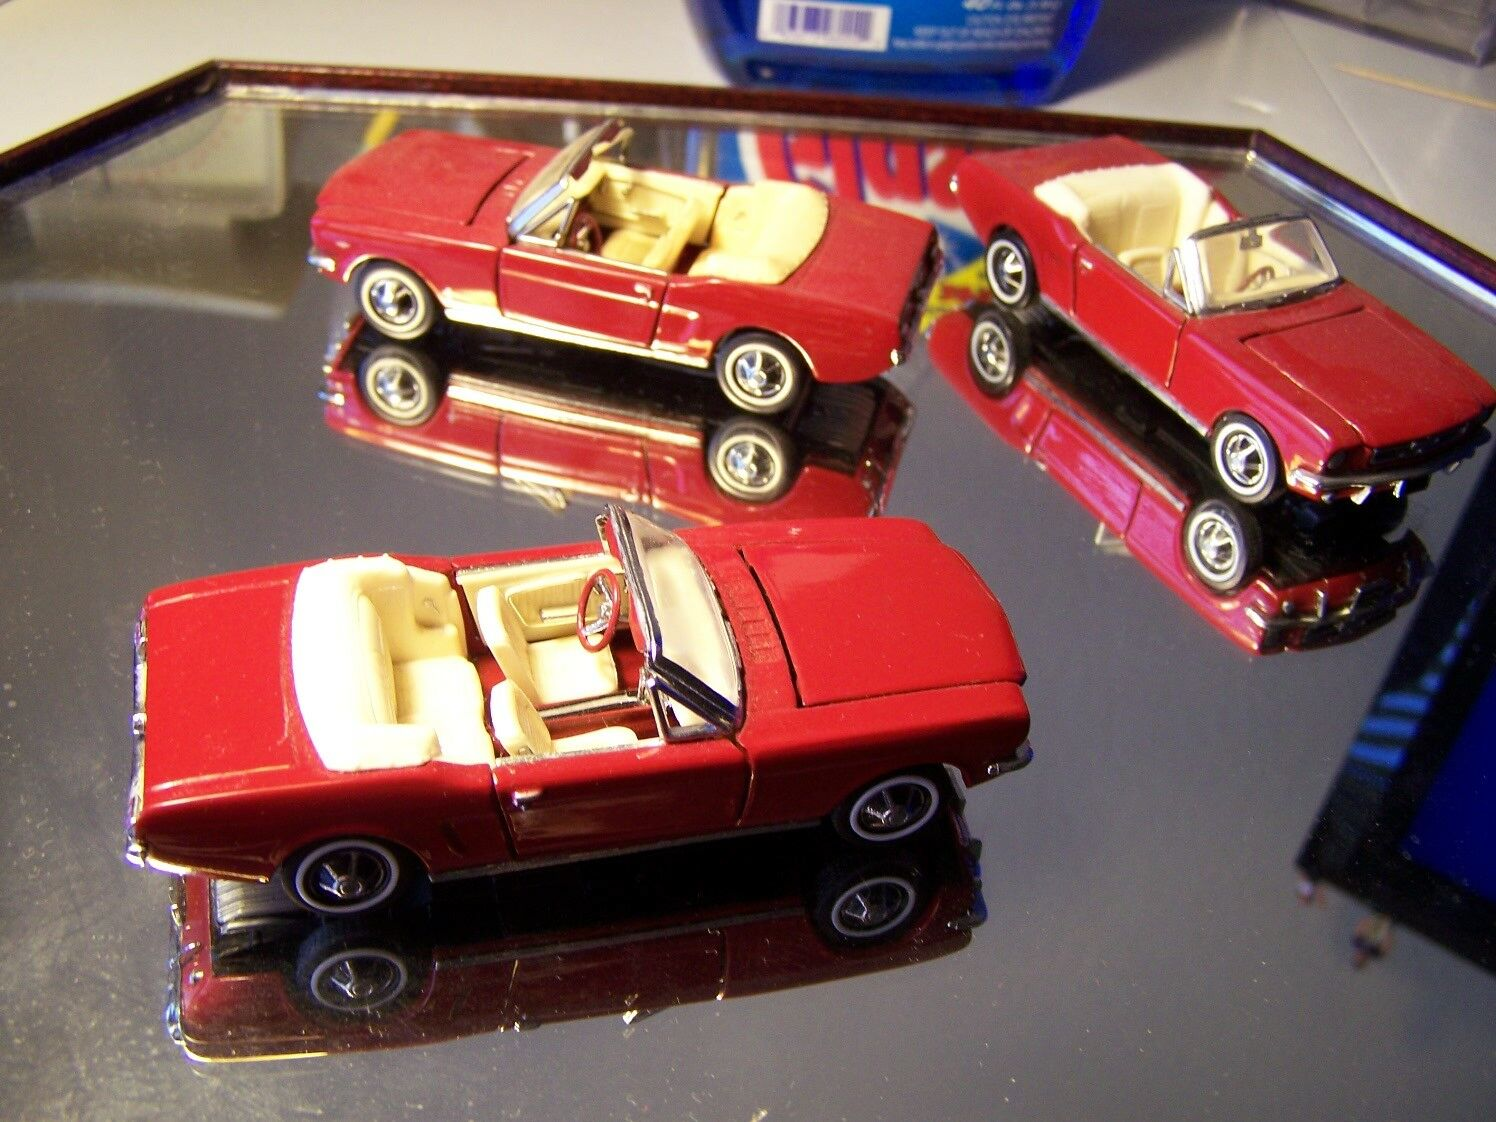 1 LEFT FRANKLIN MINT 1 43 1964 FORD MUSTANG CONgreenIBLE NO PAPERS NO BOX NICE